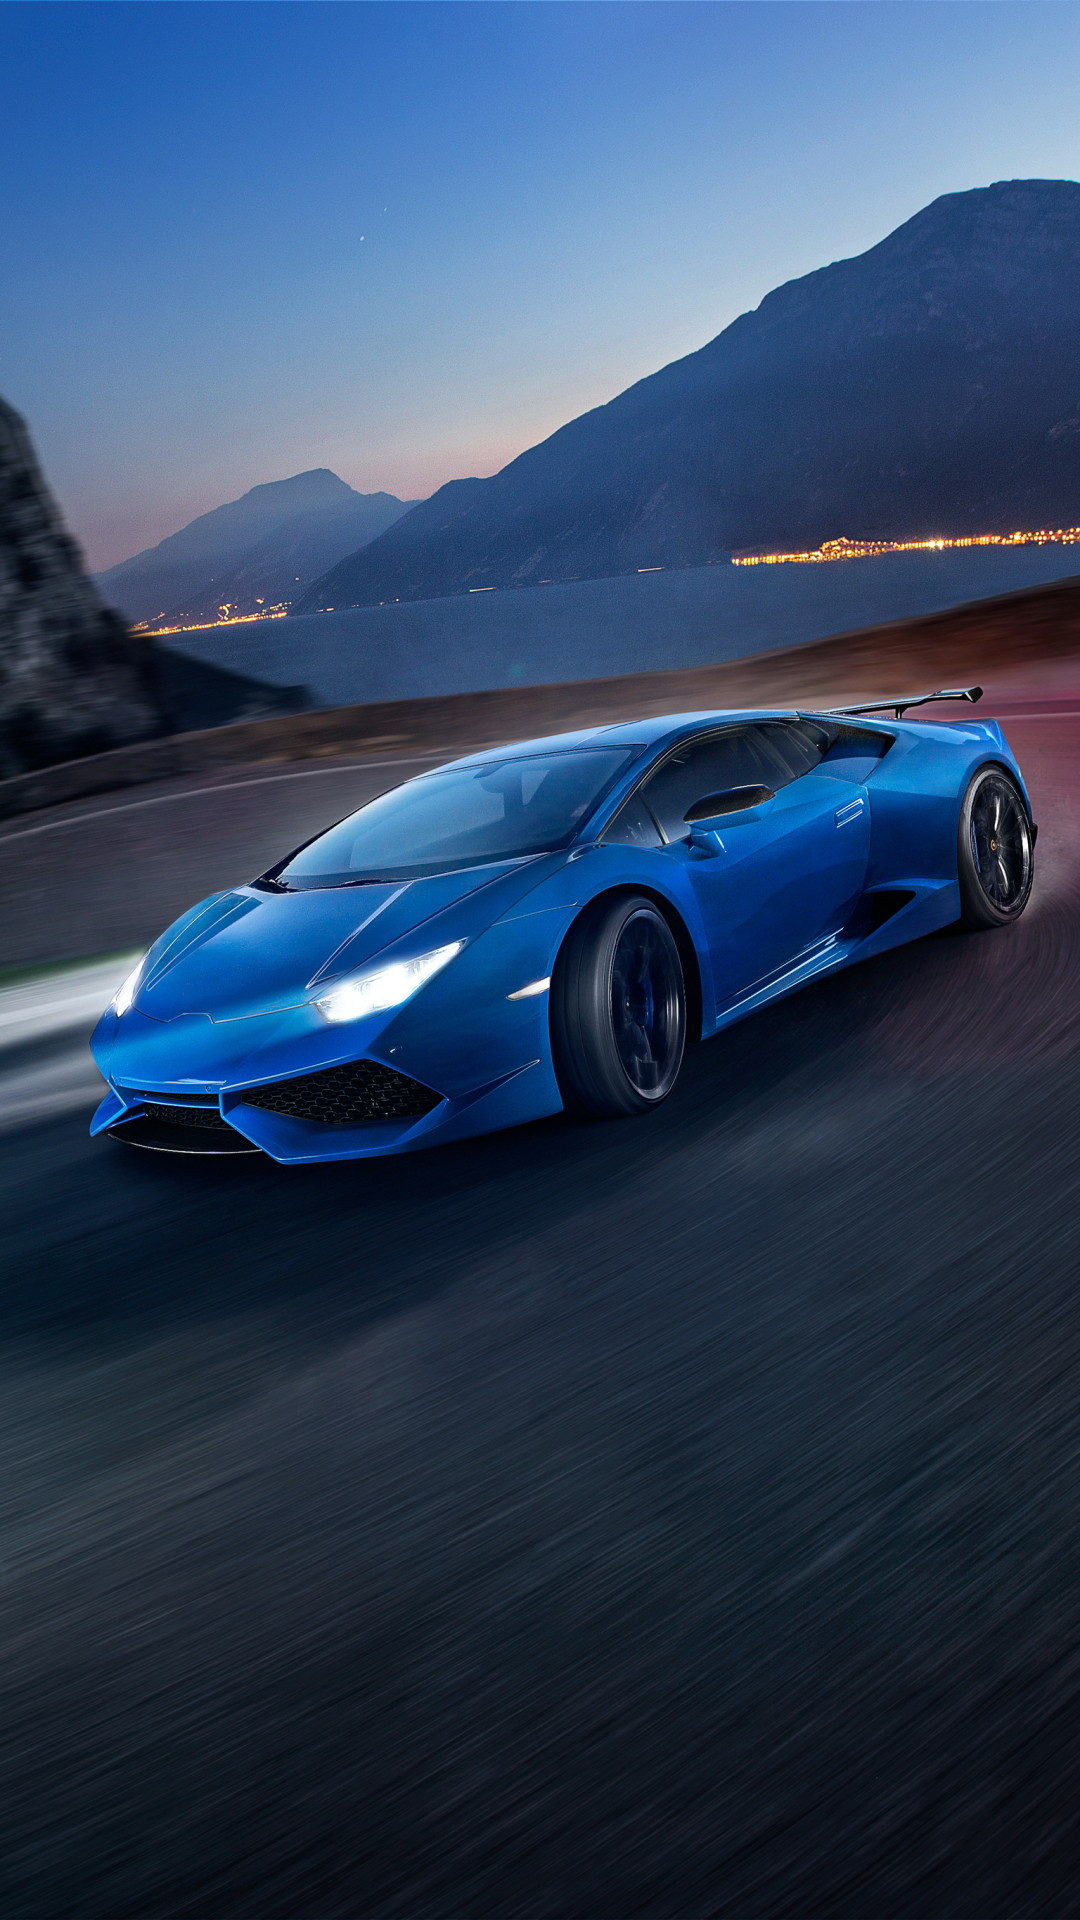 Iphone Plus Vehicles Lamborghini Huracan Wallpaper Id